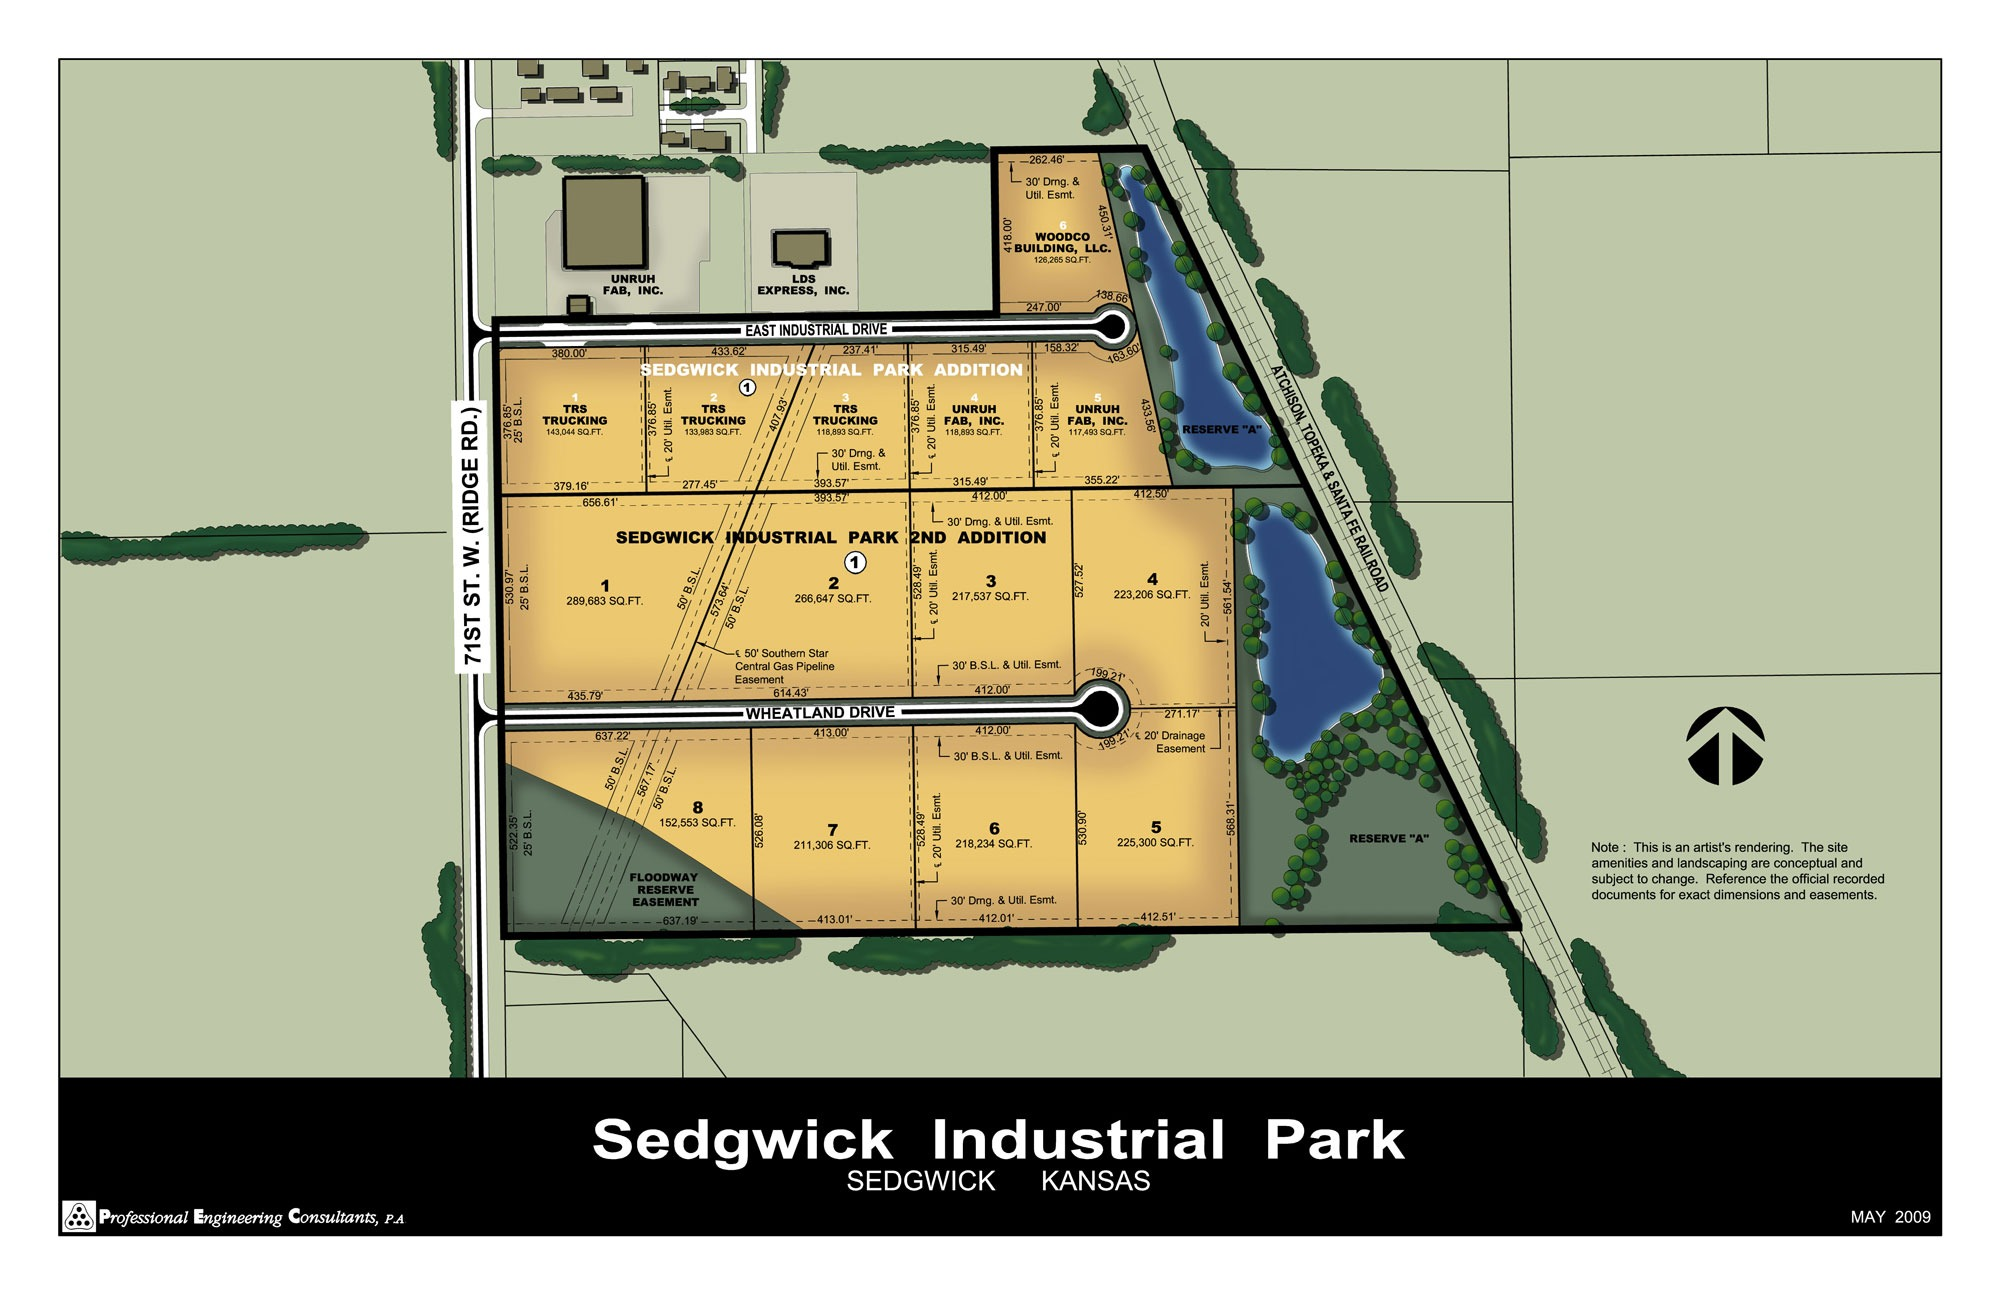 Sedgwick claims to be making progress on developing its industrial park